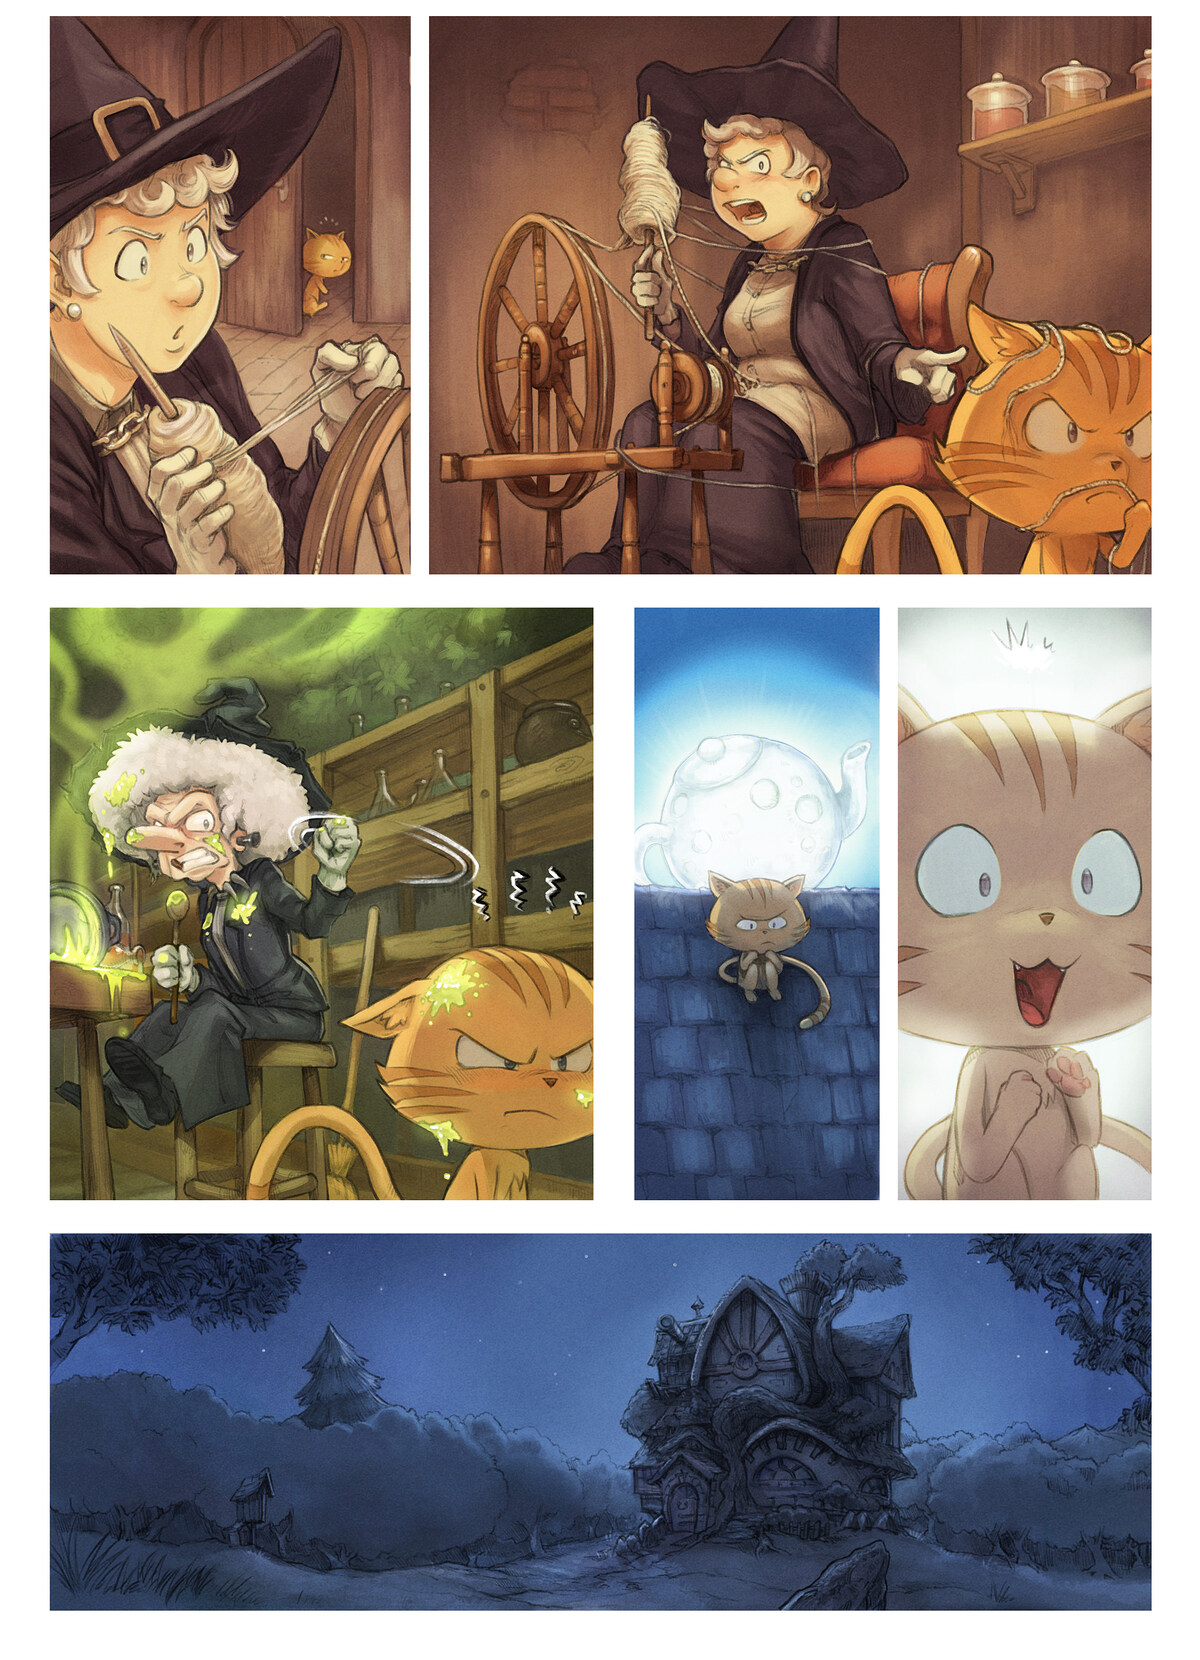 A webcomic page of Pepper&Carrot, Tập 30 [vi], trang 4